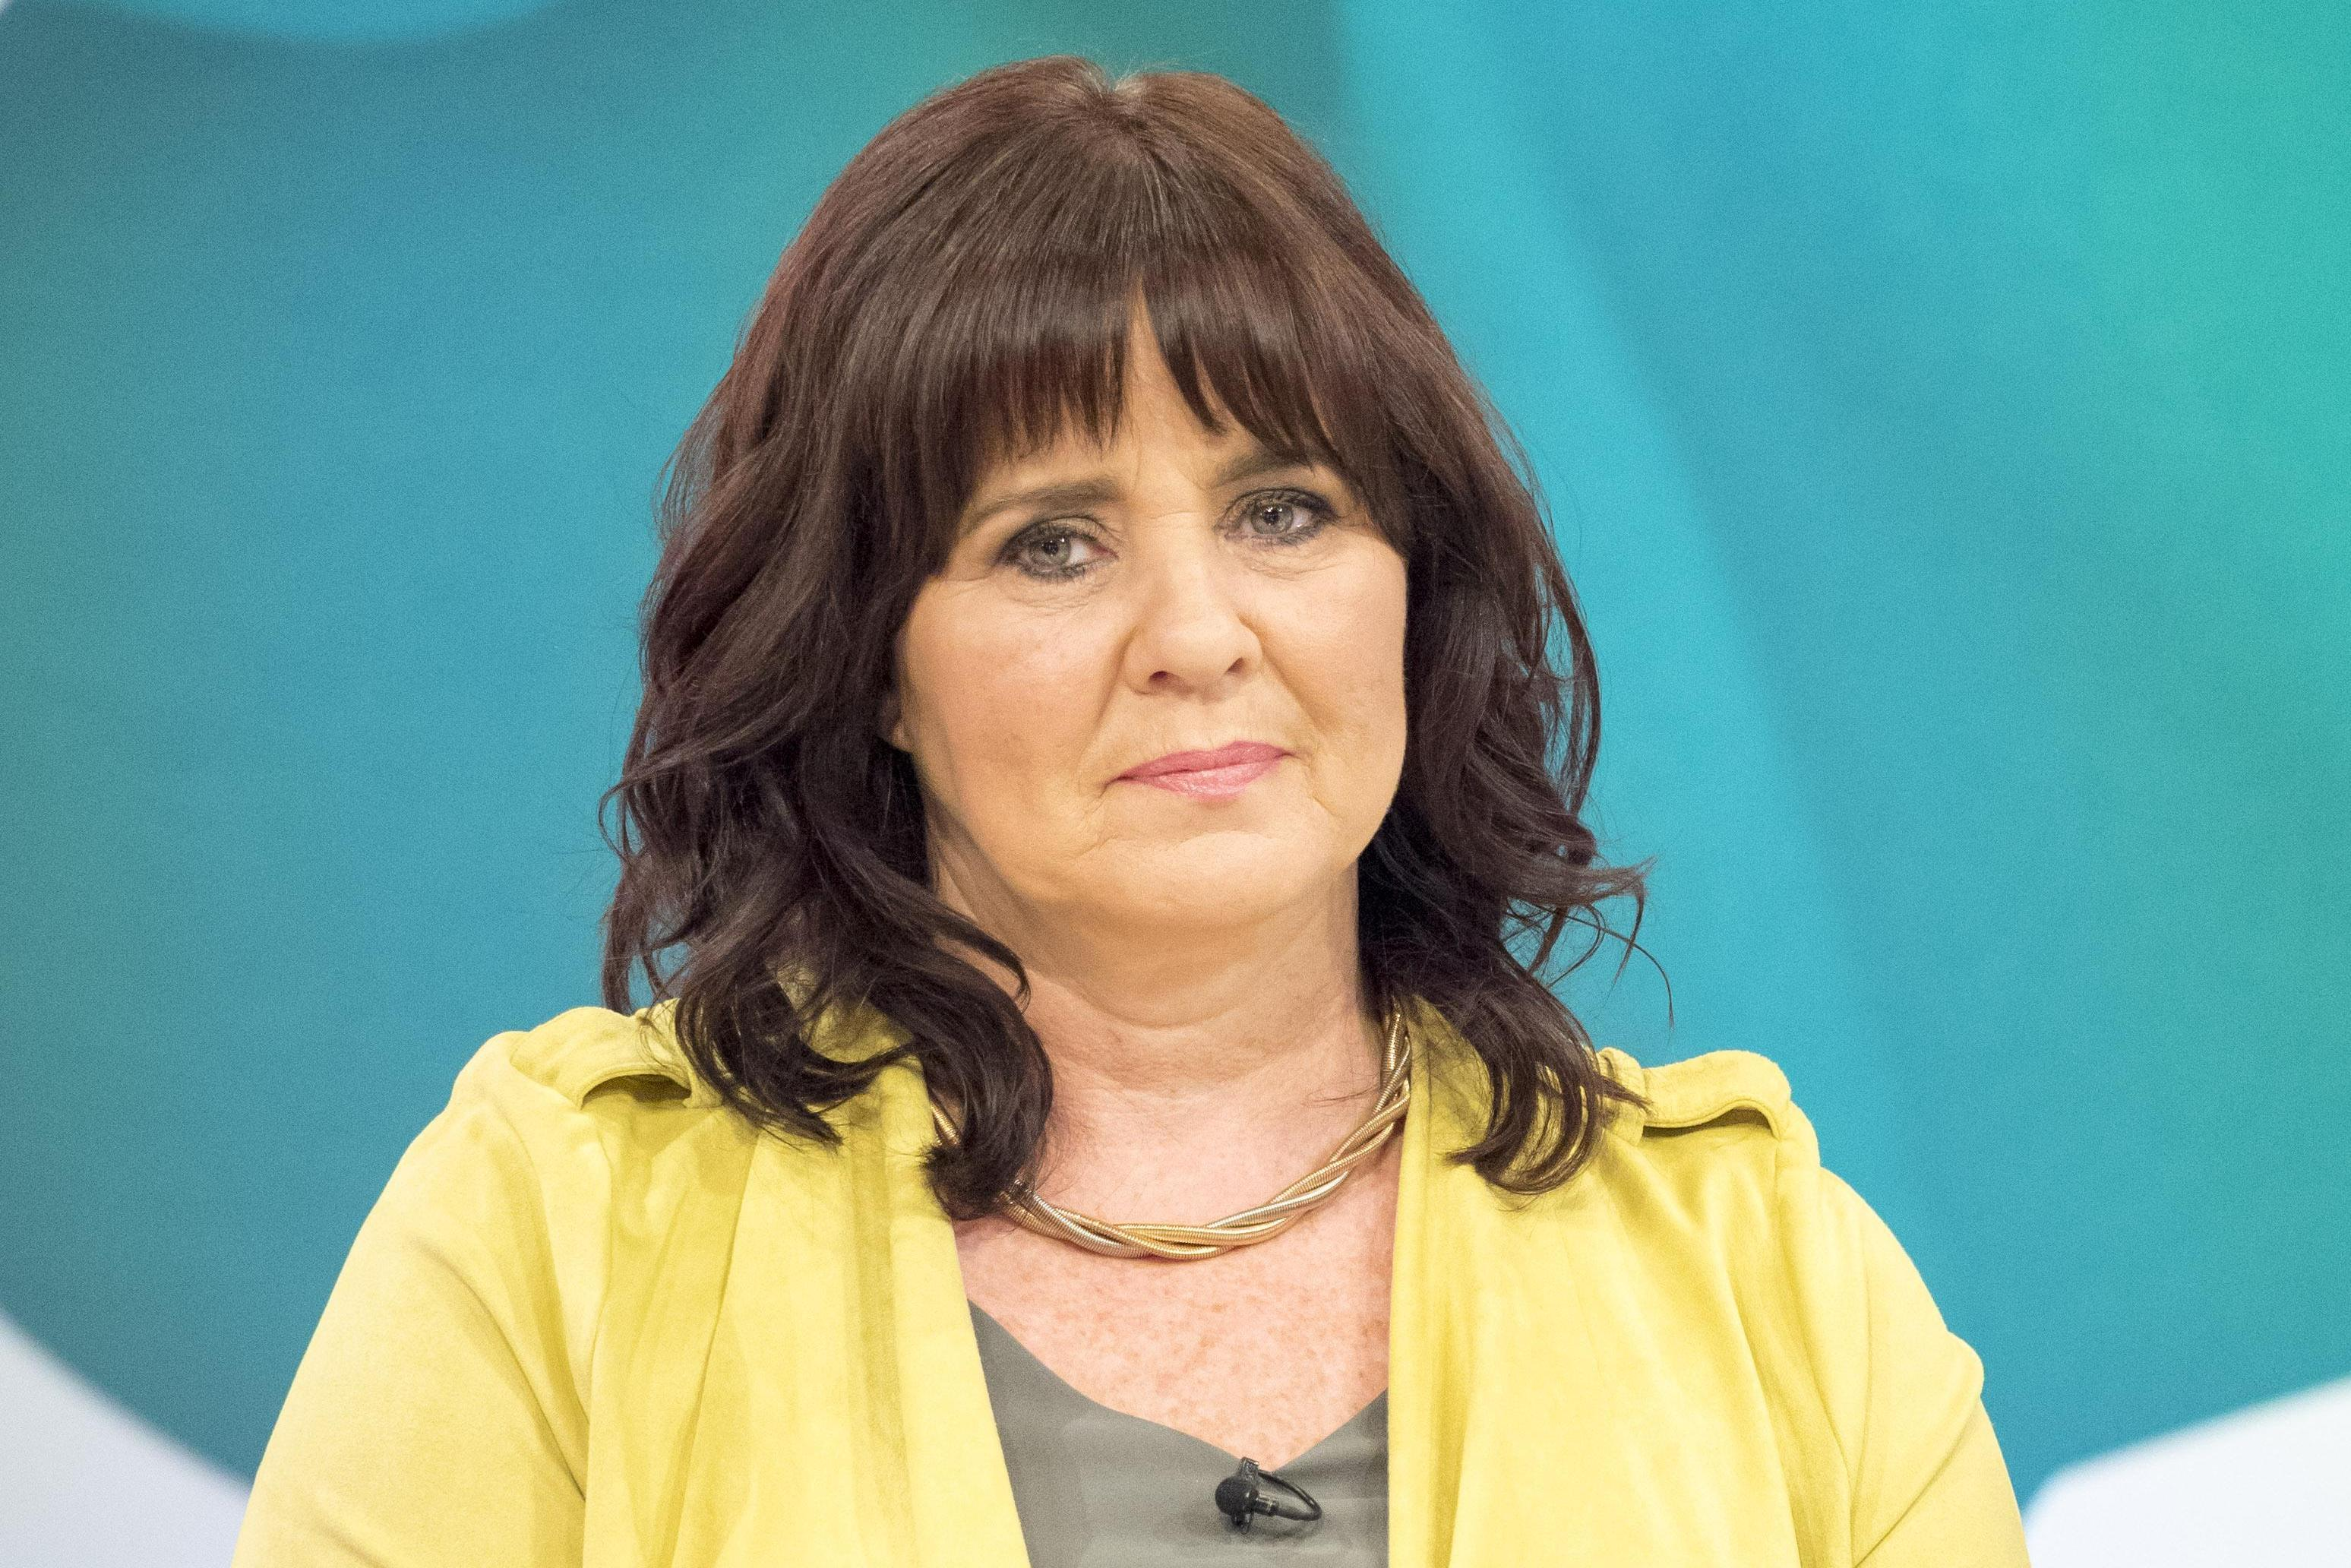 How old is Coleen Nolan, what happened on Loose Women with Kim Woodburn and what else has the ex singer appeared on?